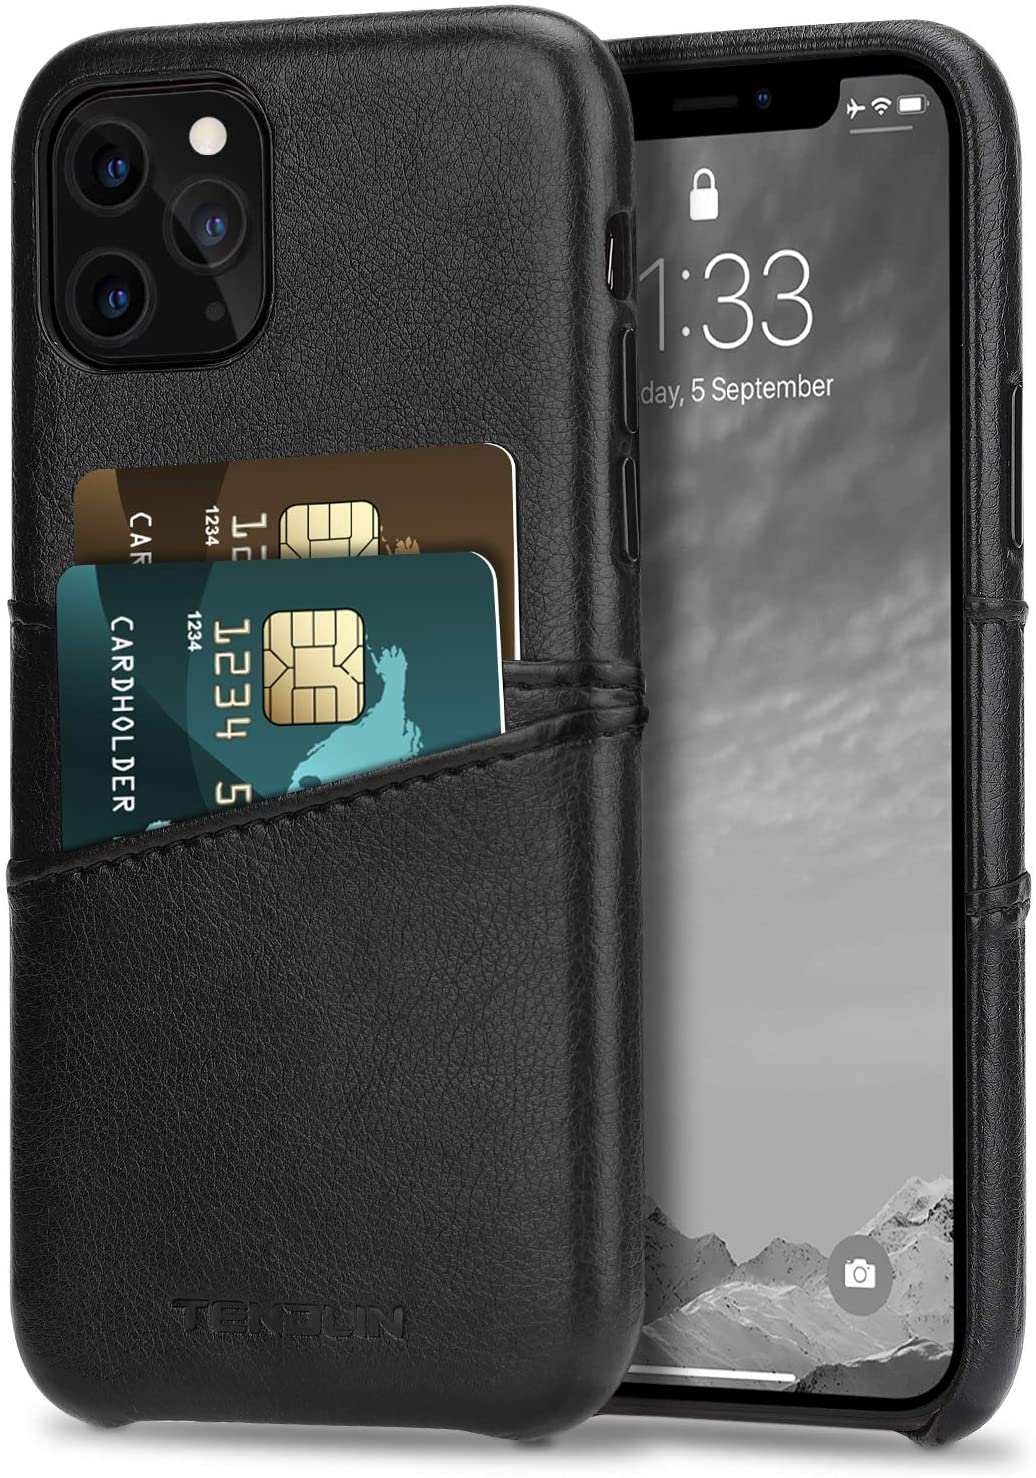 TENDLIN Compatible with iPhone 11 Pro Max Case Wallet Design Premium Leather Case with 2 Card Holder Slots (Black)